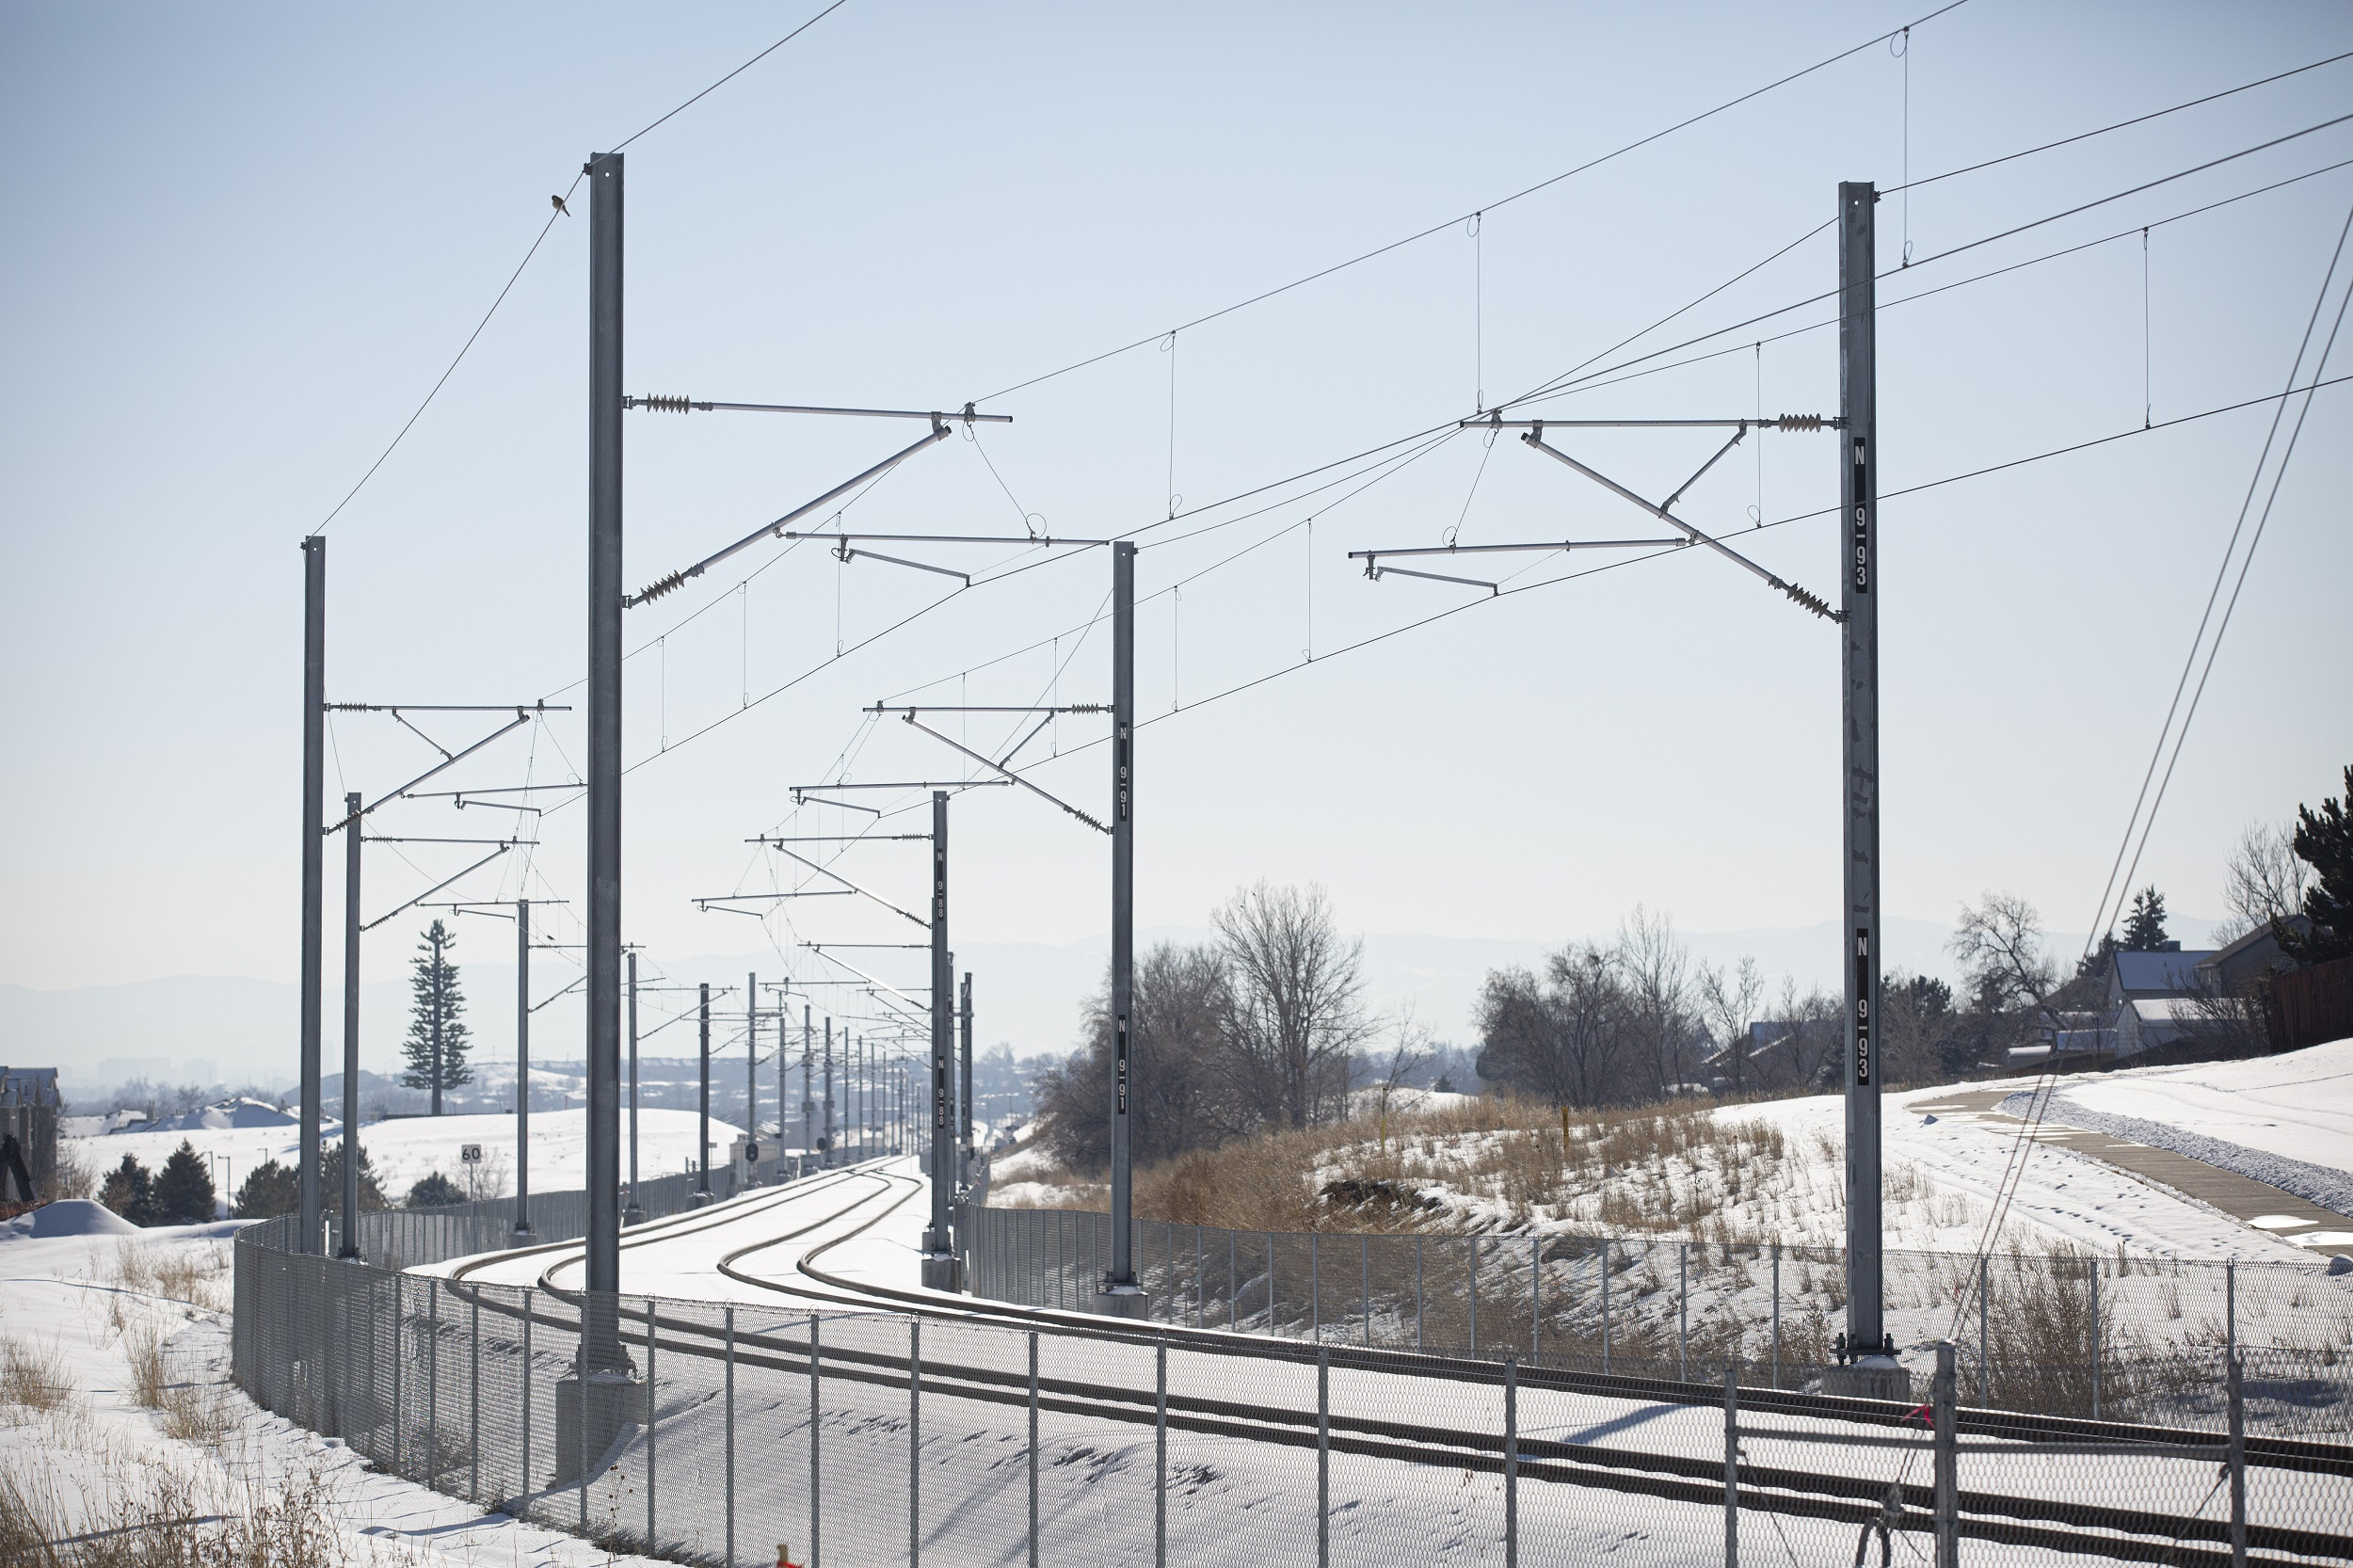 Tracks for RTD's N Line as seen from E 100th Avenue in Thornton, Colorado.